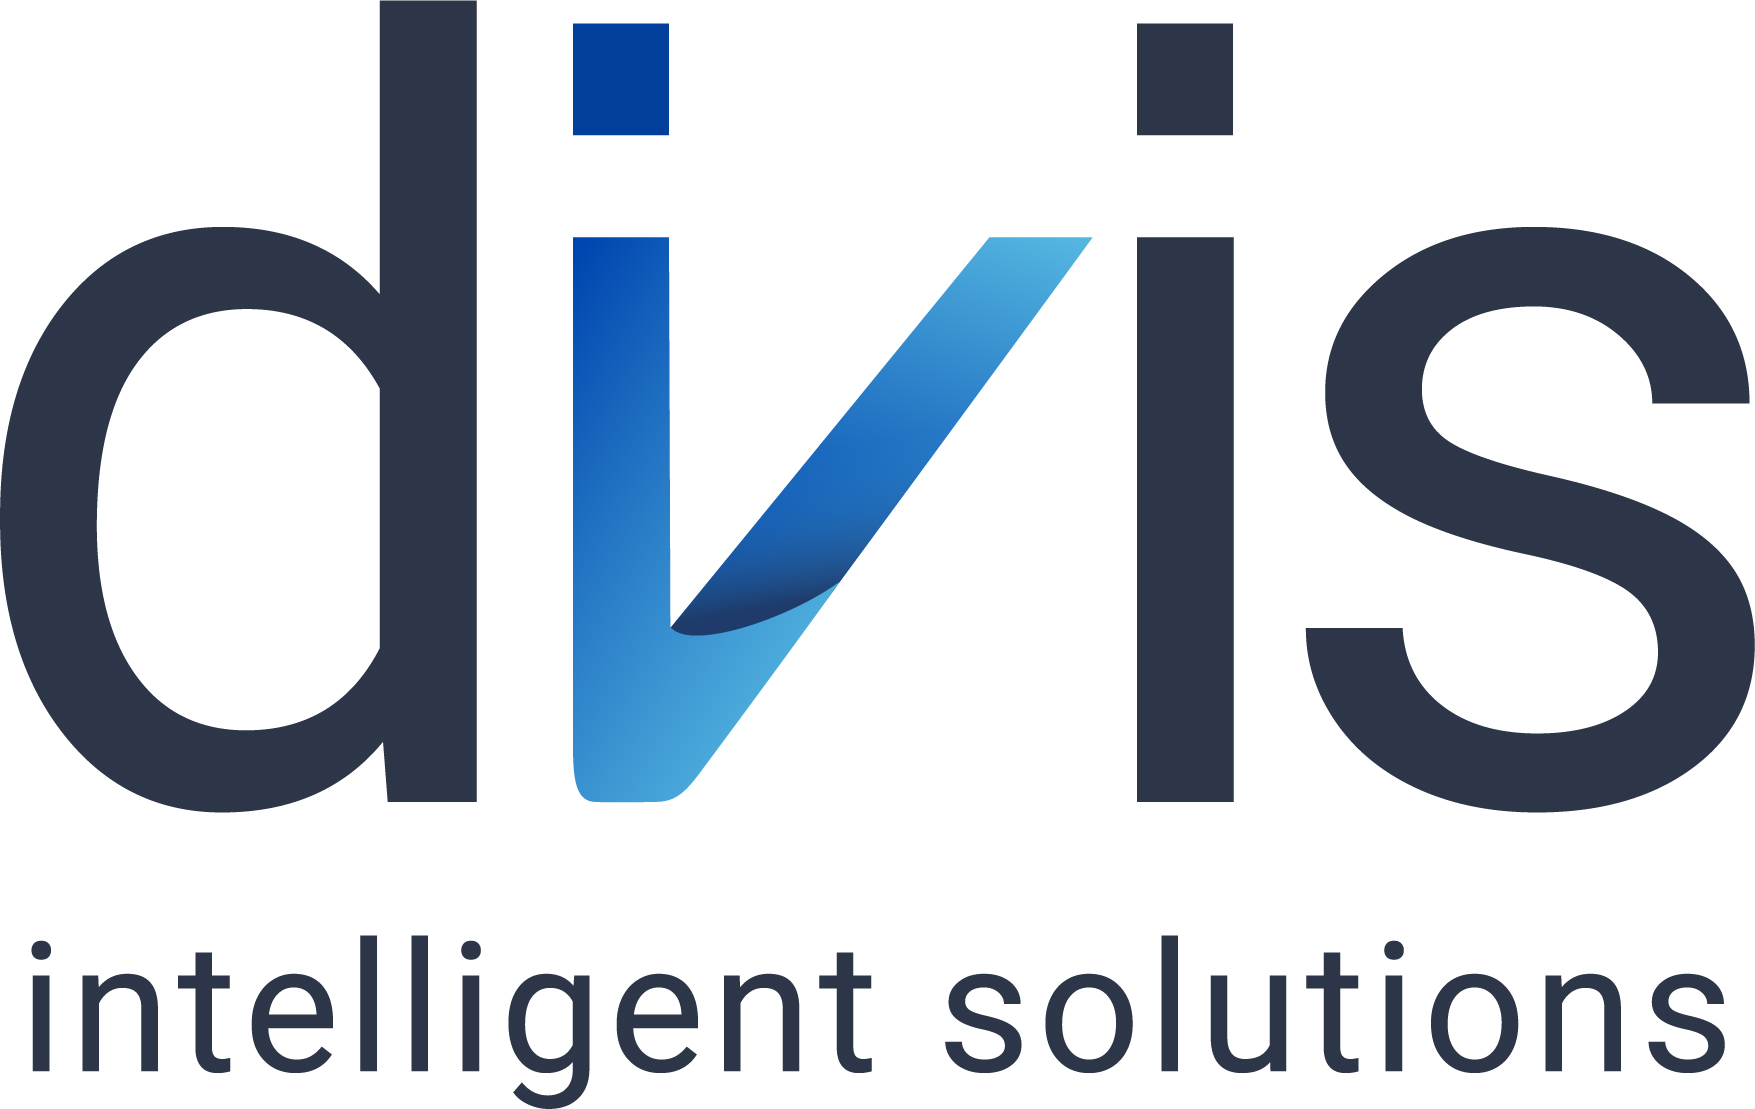 divis intelligent solutions GmbH